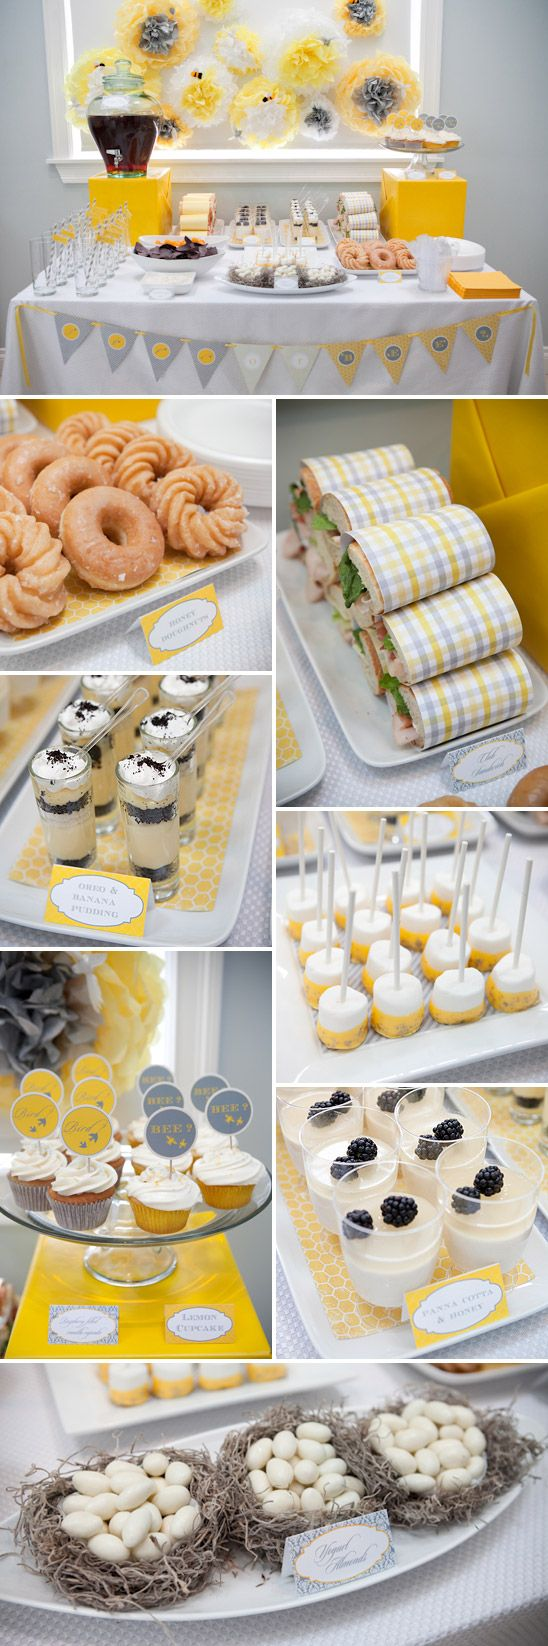 baby shower on pinterest diaper cakes tutorial themed baby showers